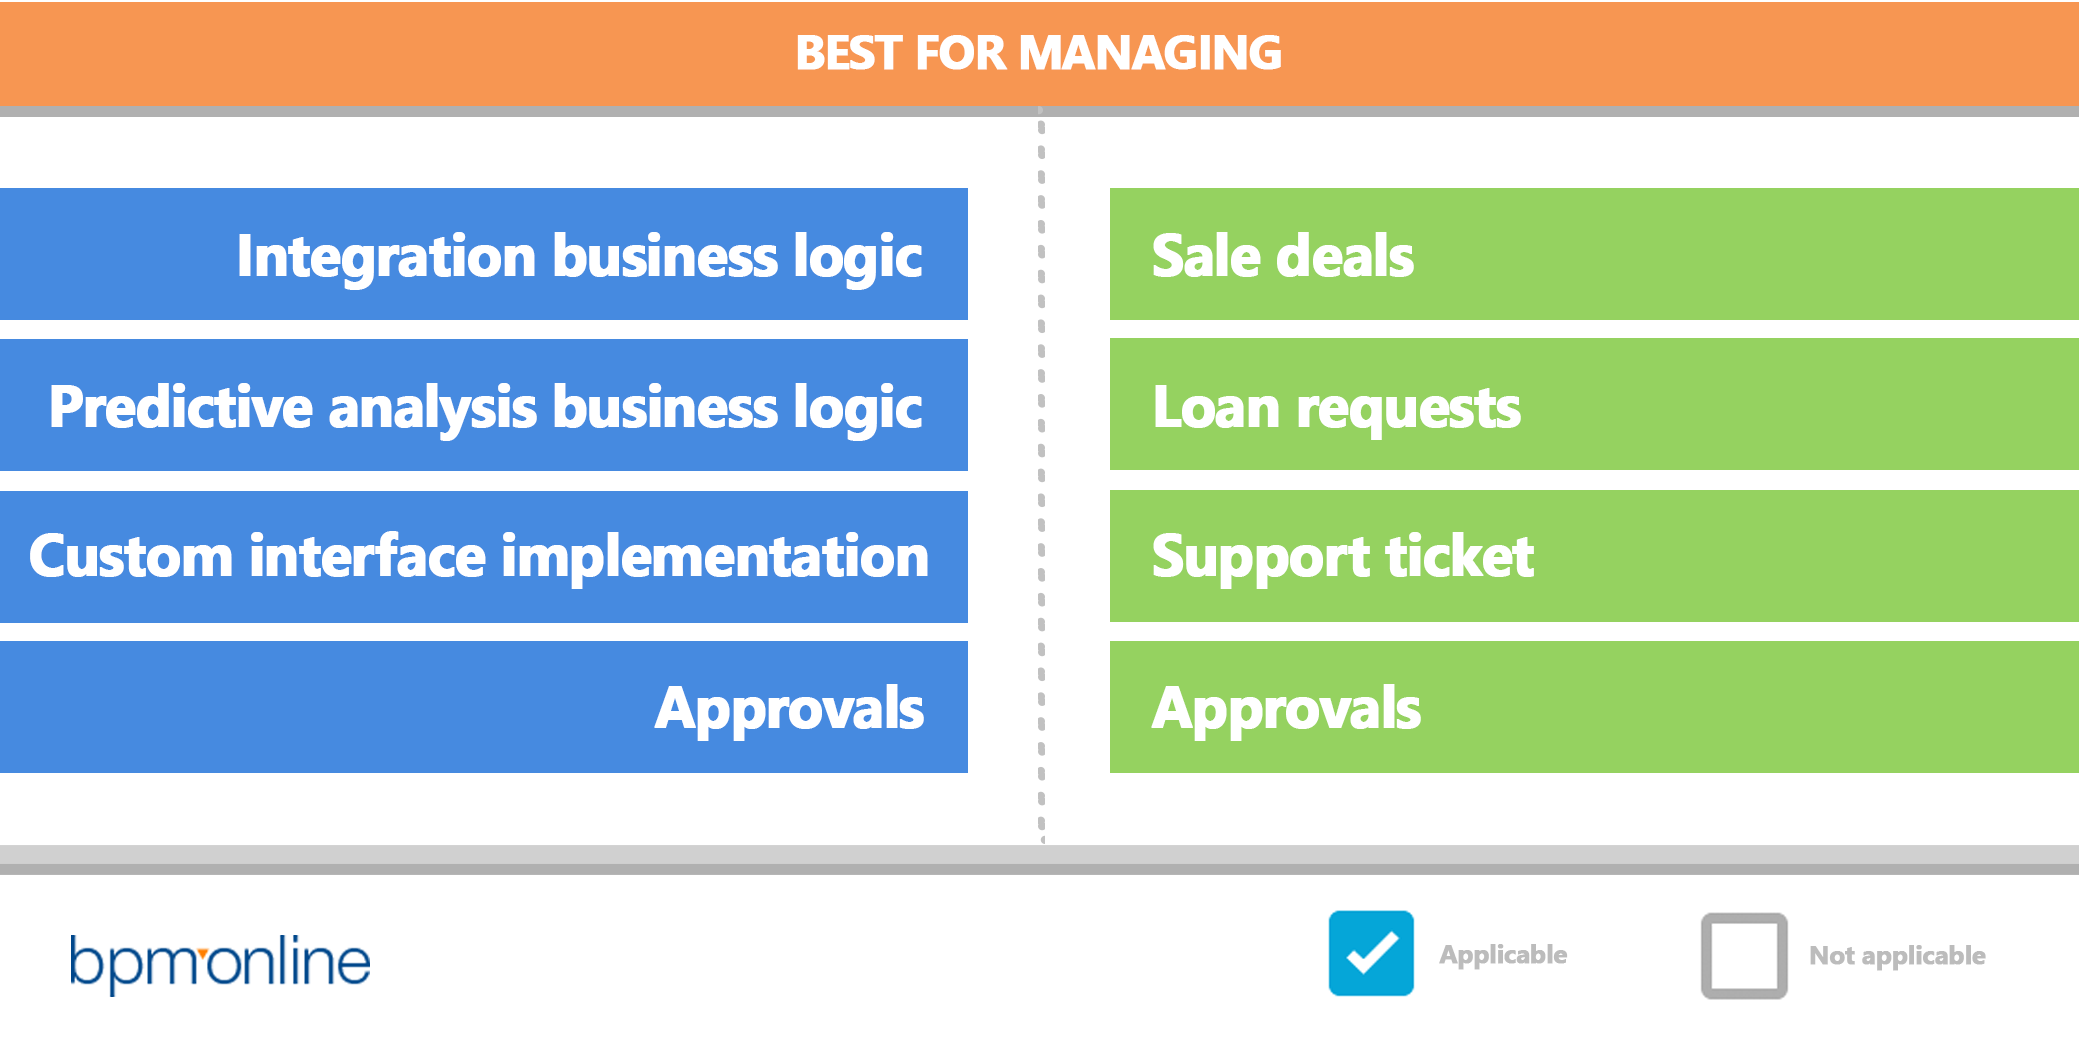 bpm'online_bpmn_vs_dcm_best for managing